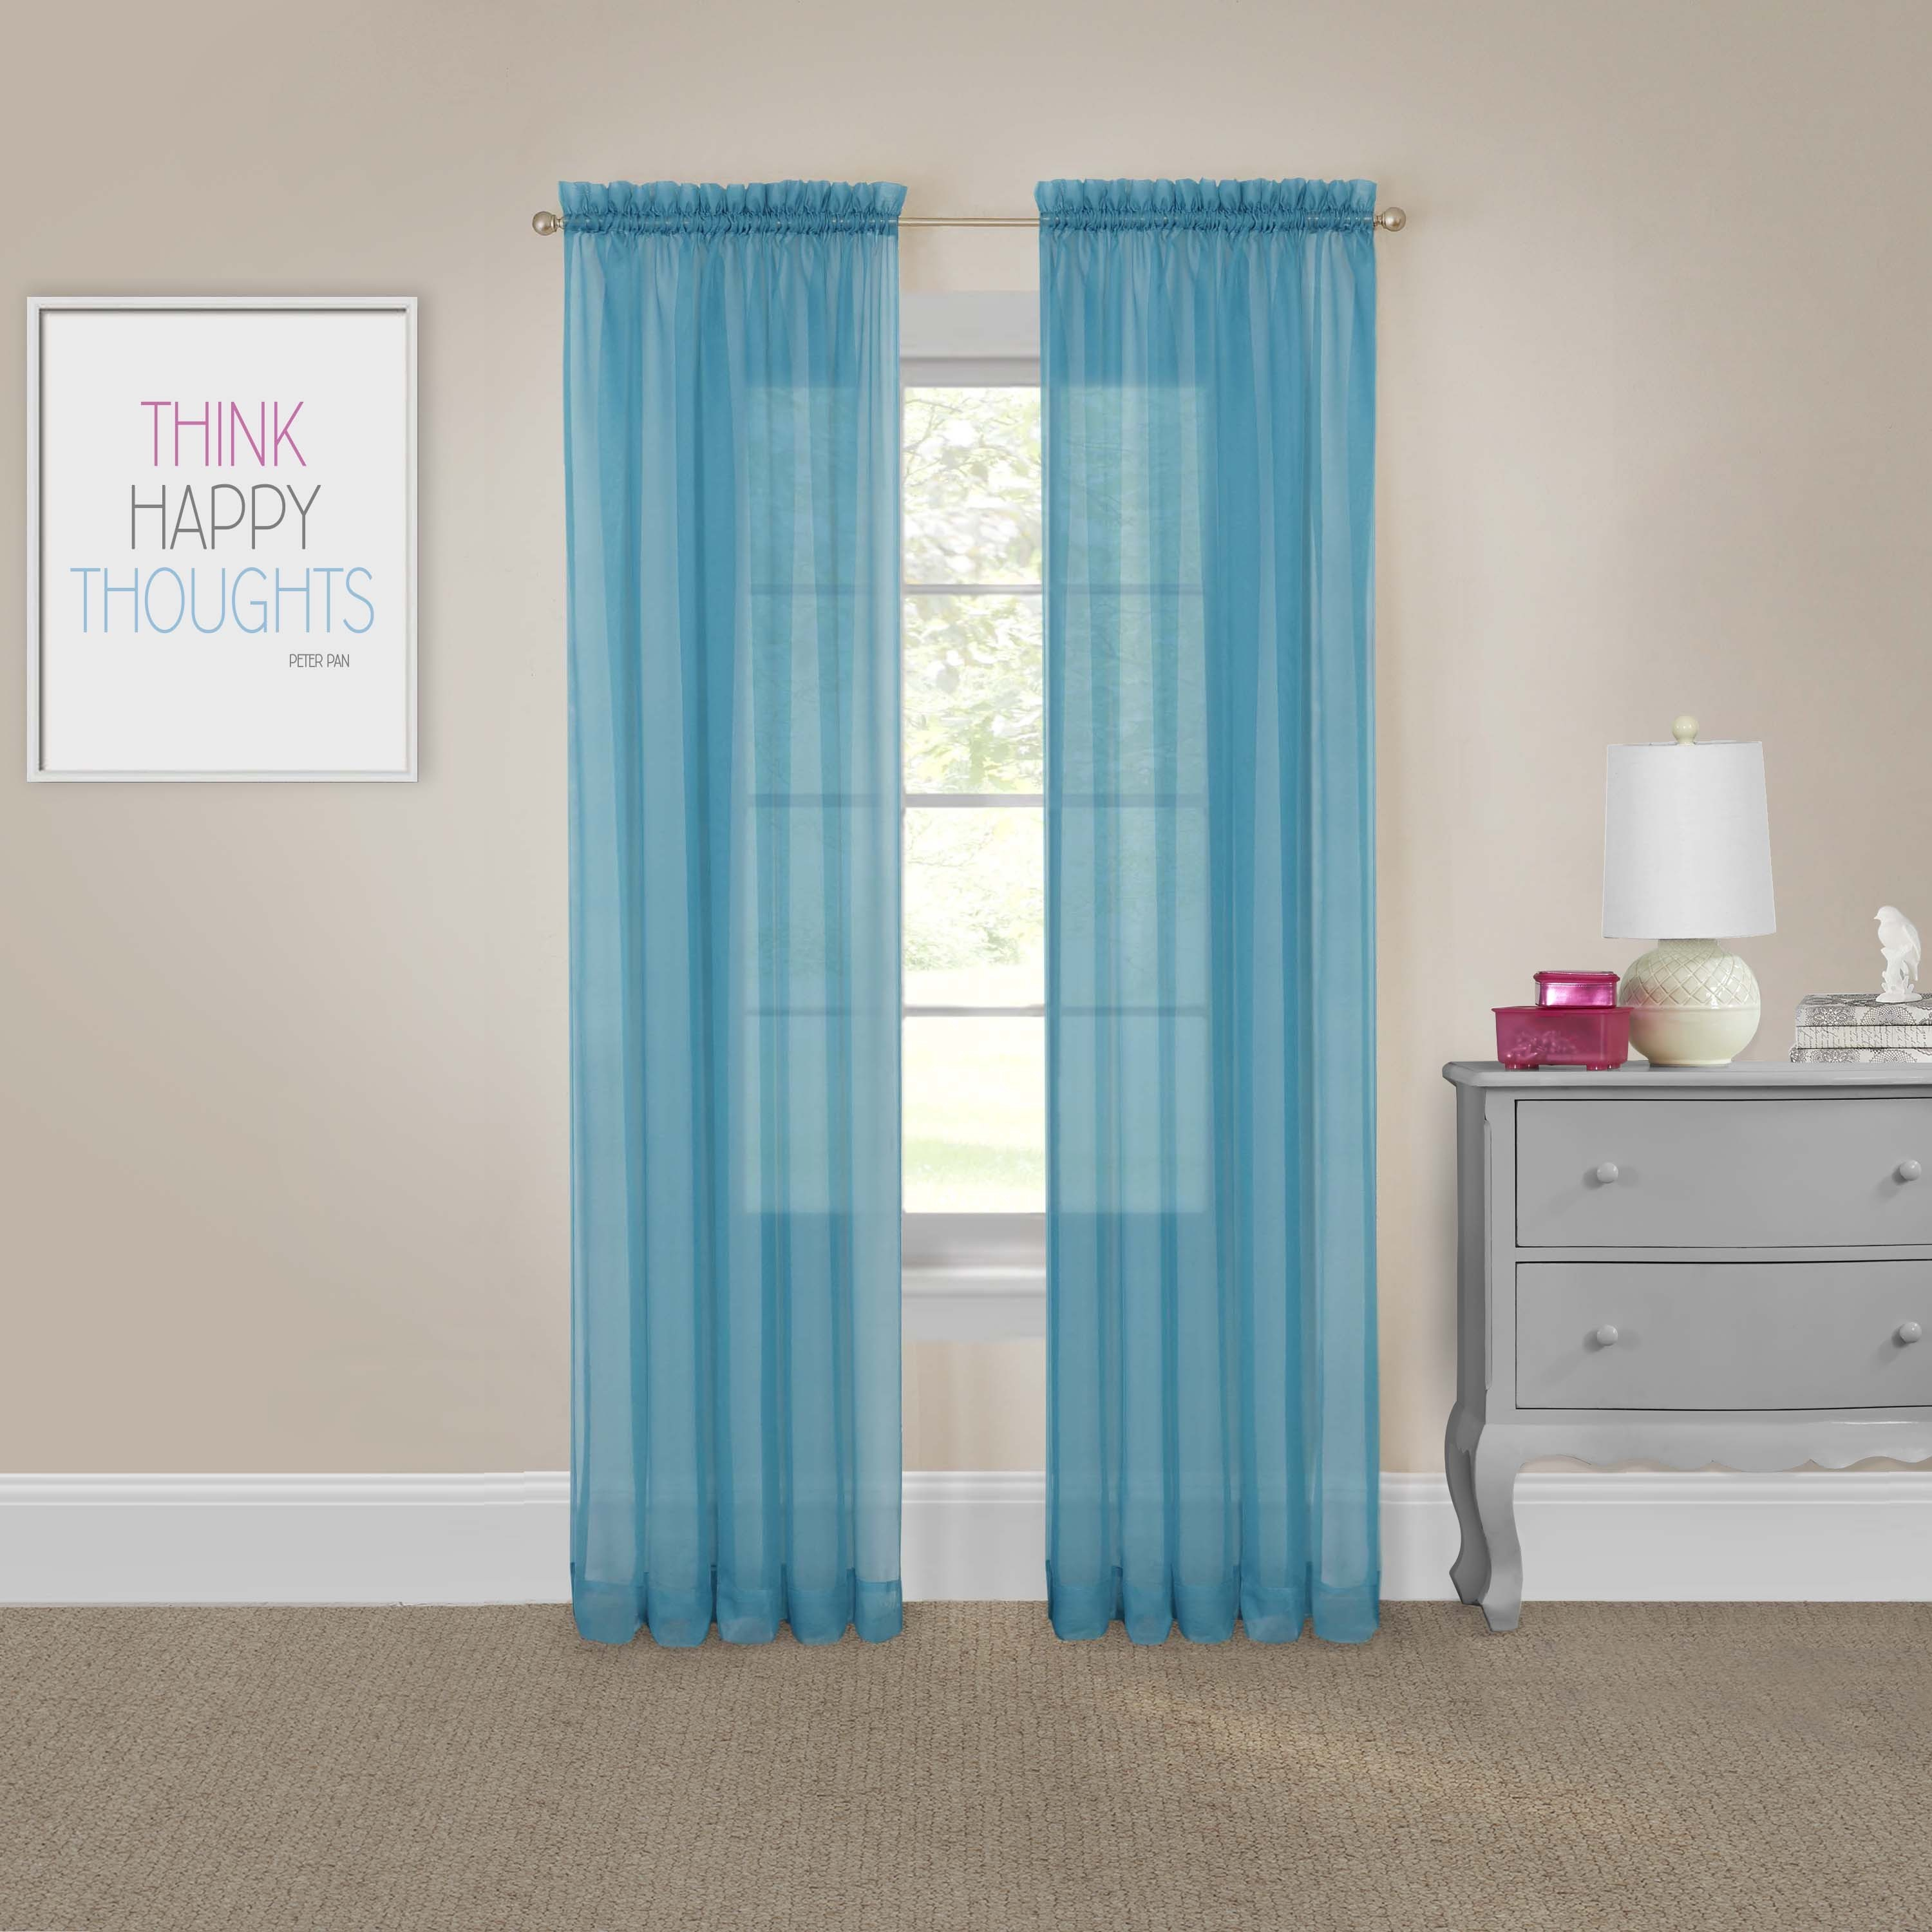 Pairs To Go Victoria Voile Curtain Panel Pair With Pairs To Go Victoria Voile Curtain Panel Pairs (View 3 of 20)